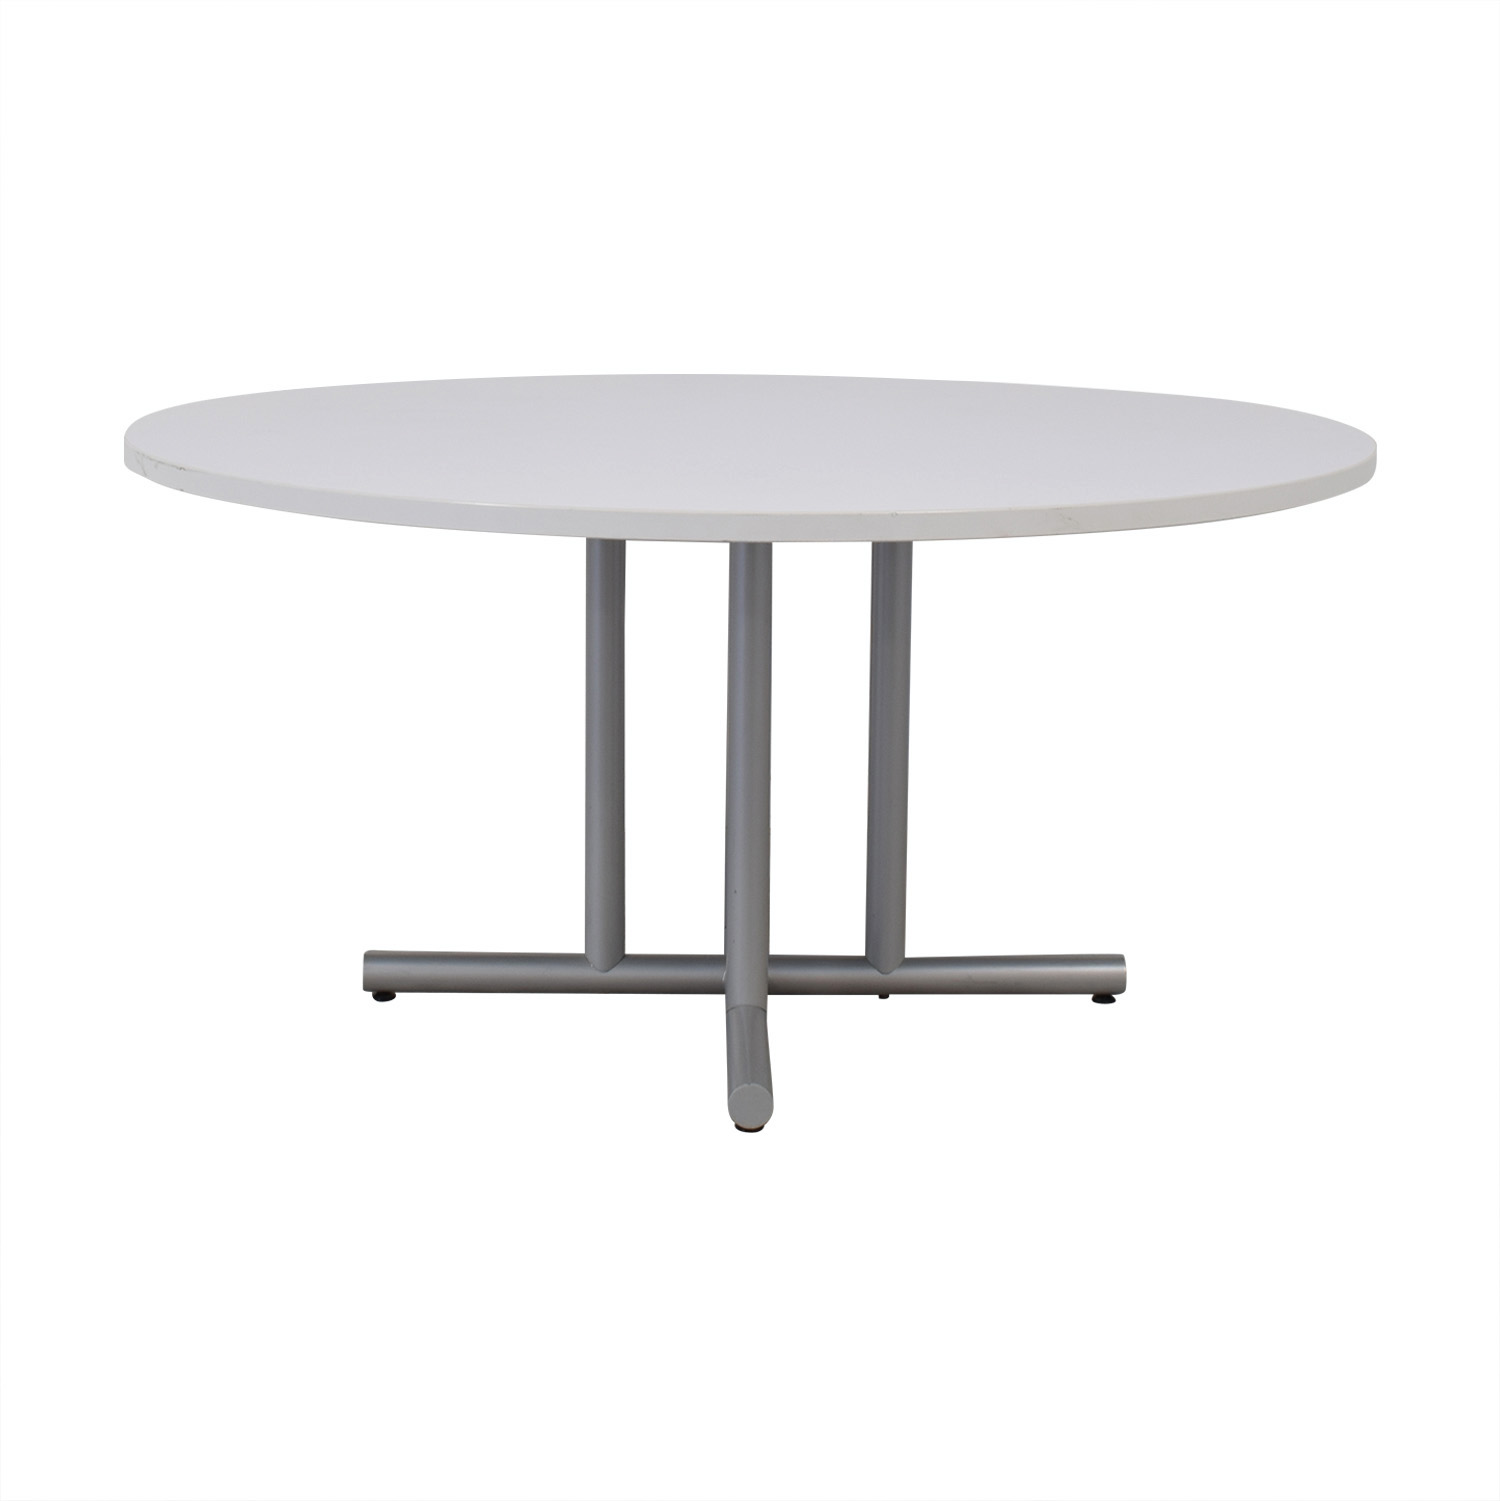 Versteel Versteel Performance X4 60 Round Table dimensions